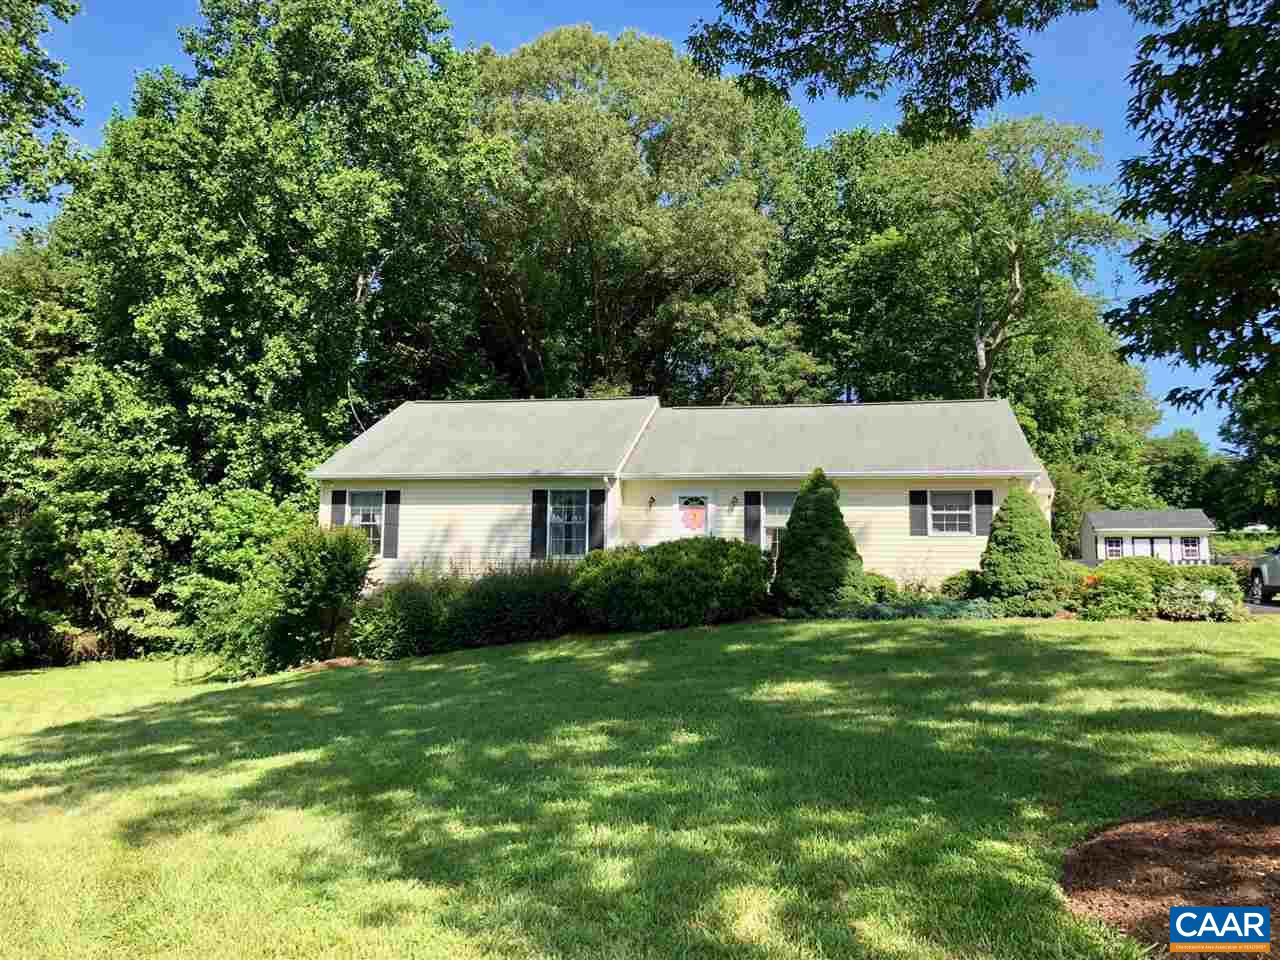 home for sale , MLS #578127, 66 Bambi Dr